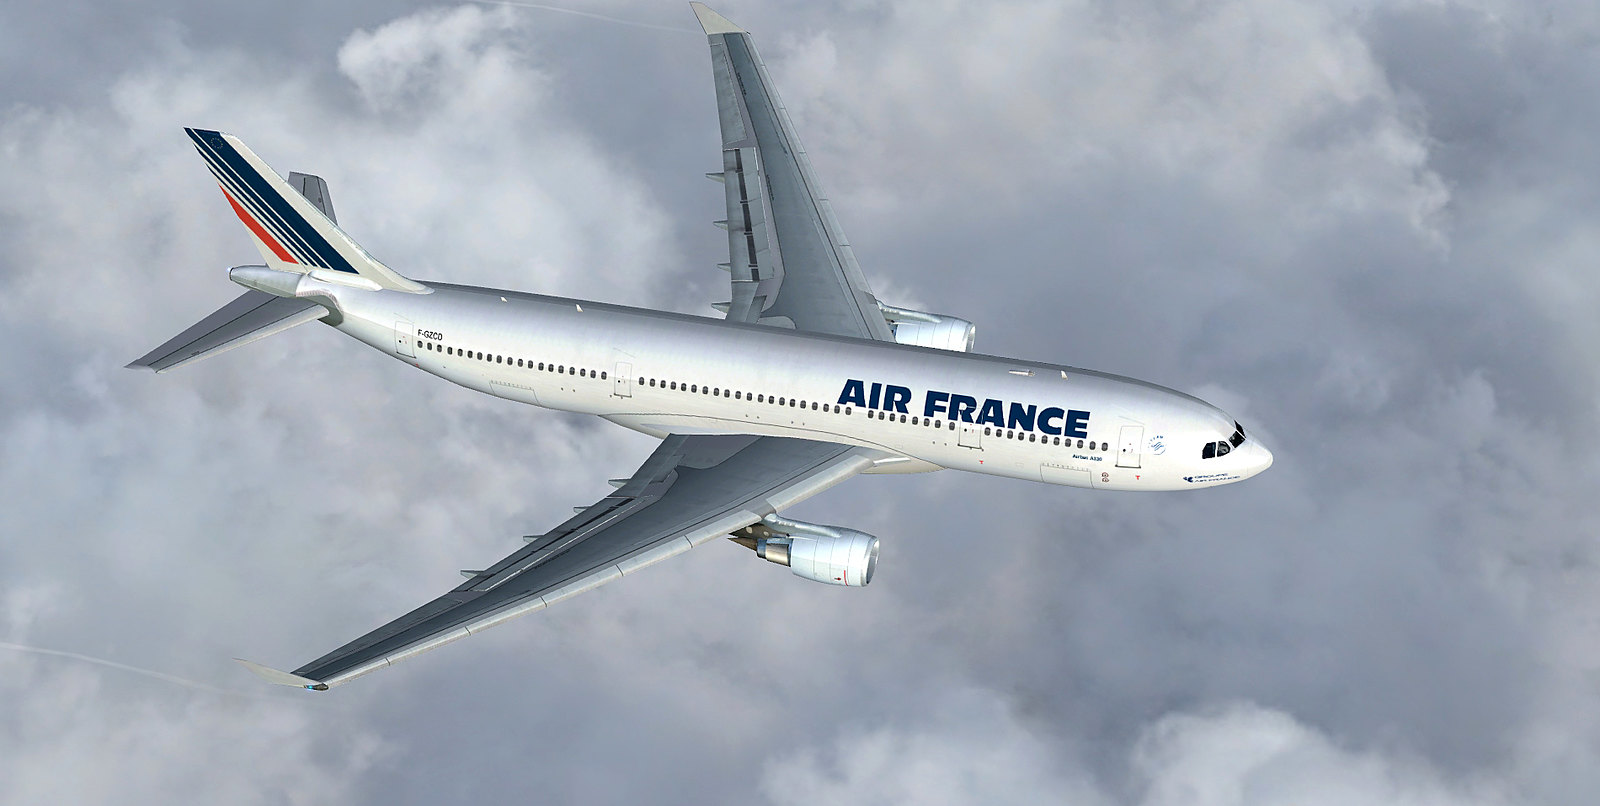 air france a330 200 paris charles de gaulle nice cote d 39 azur videos screenshots. Black Bedroom Furniture Sets. Home Design Ideas